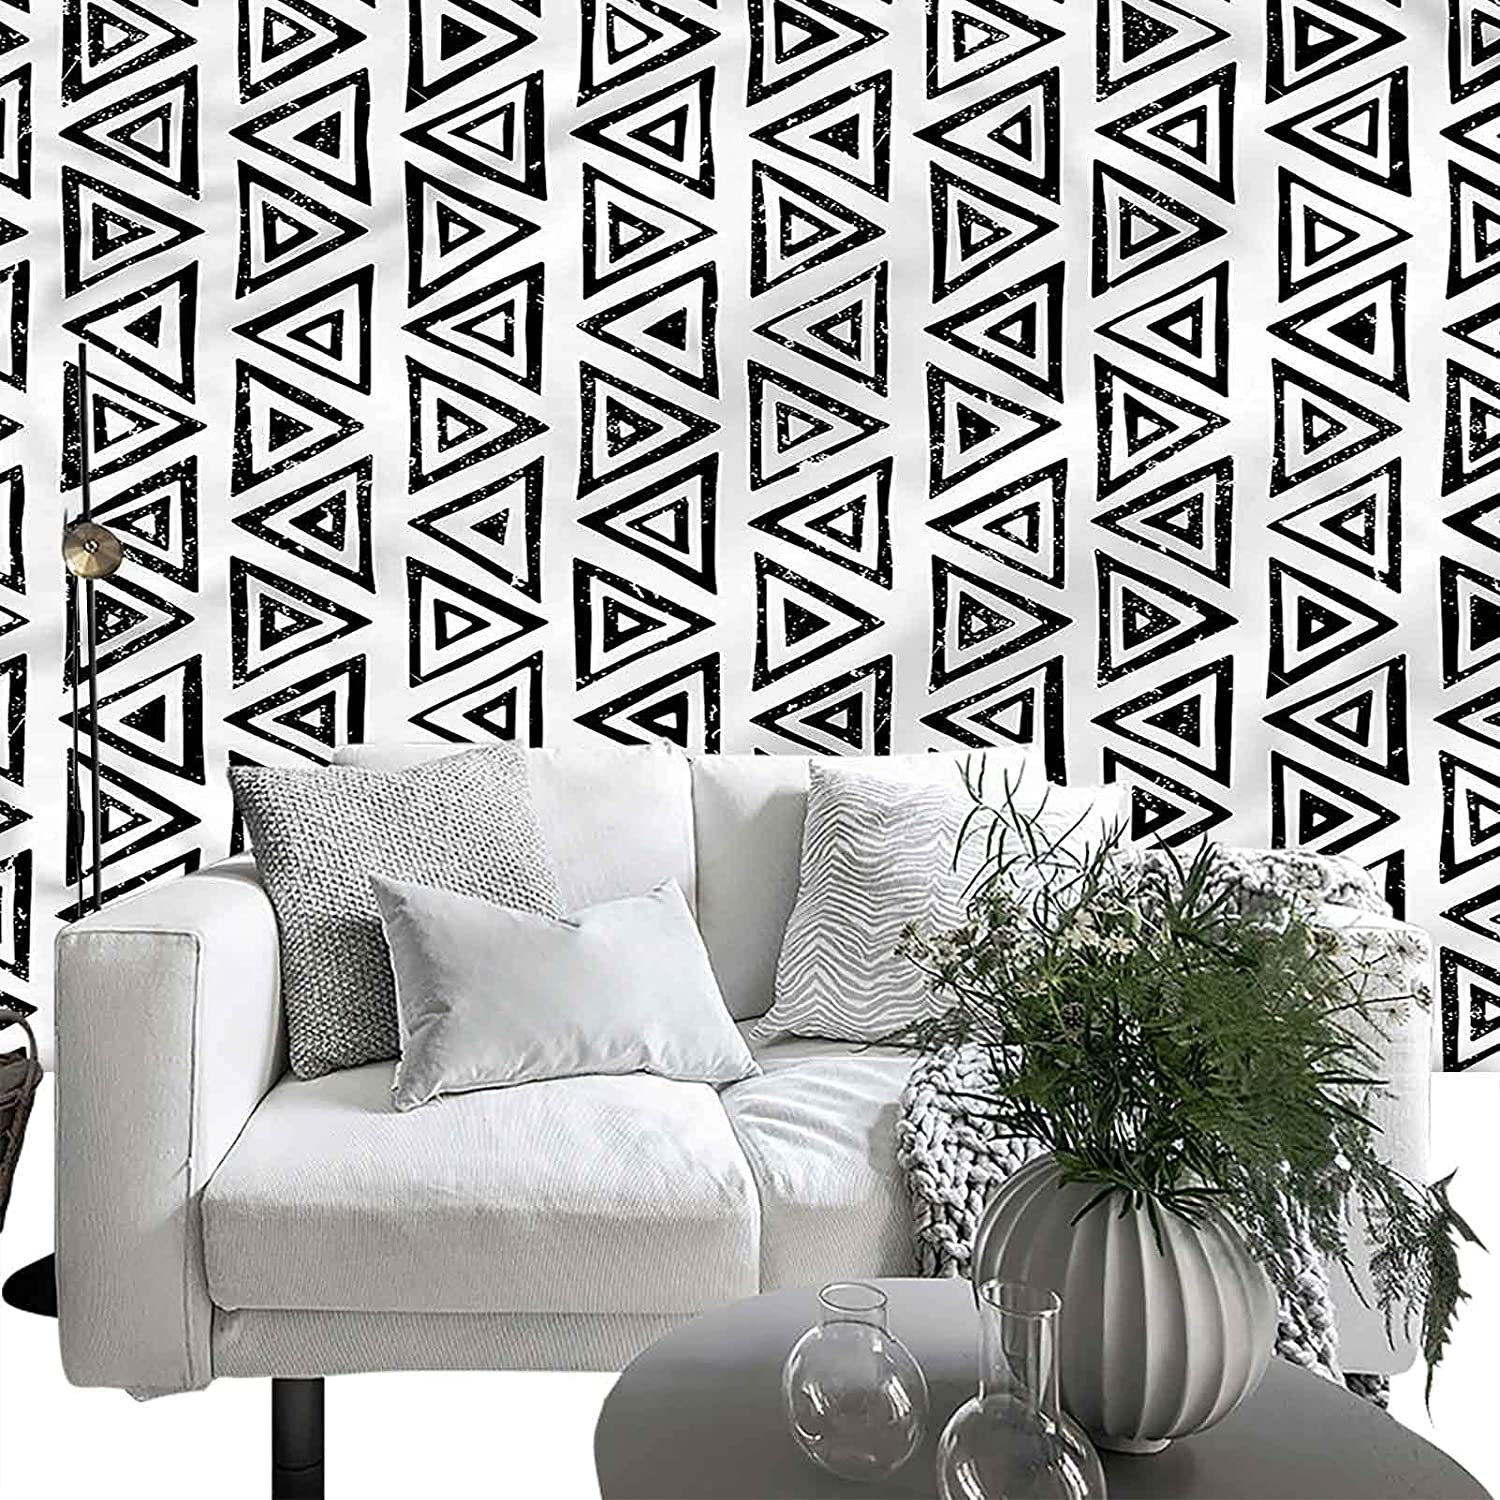 Raleigh Mall Wall Reservation Decor Print Picture Abstract Aztec Geometric Culture 66x96